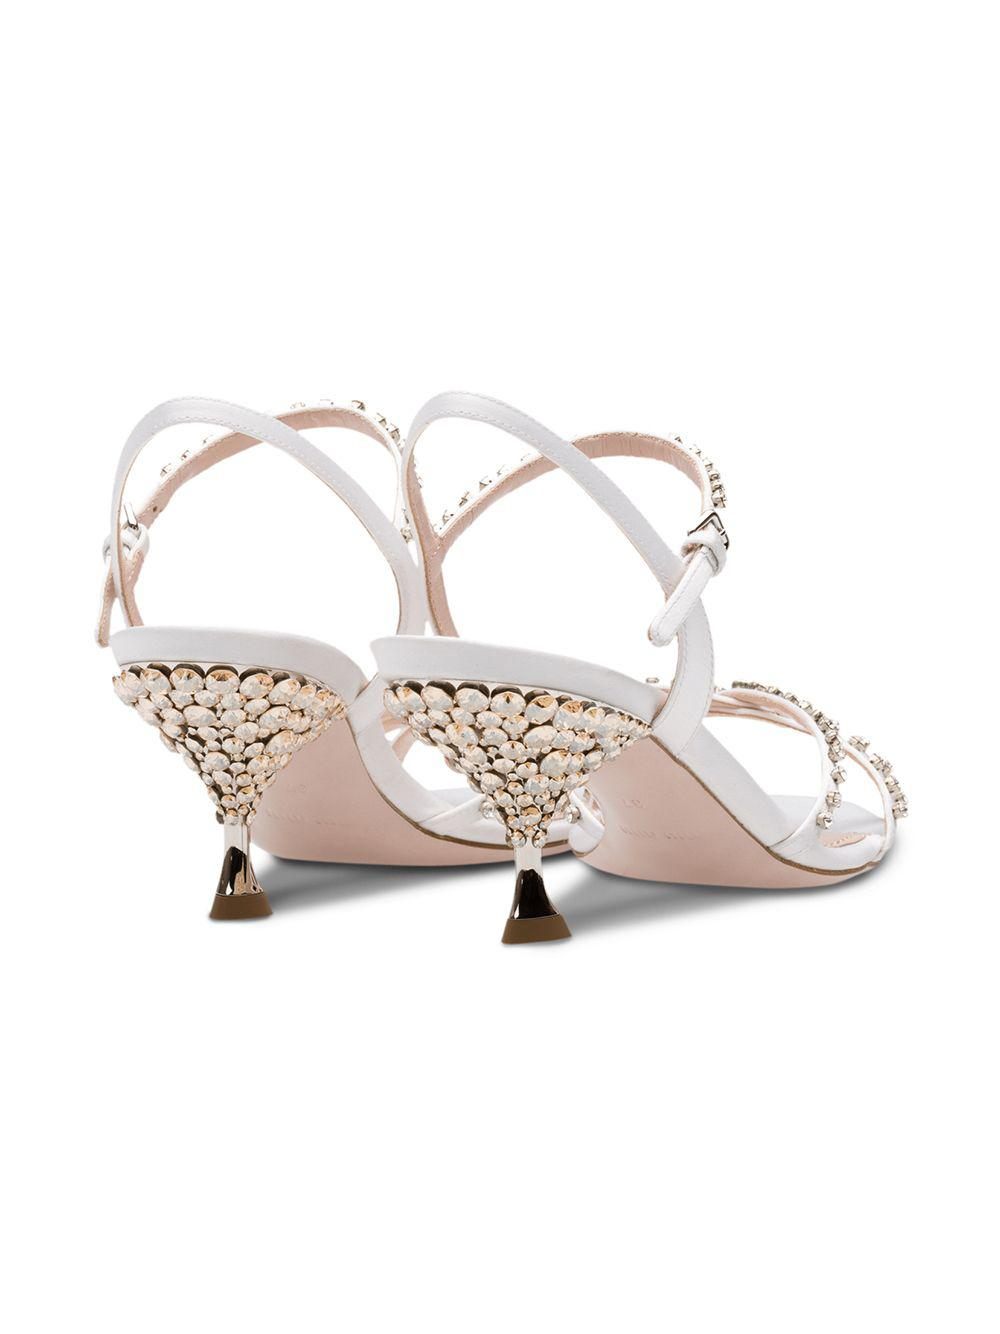 87b15763be7 Lyst - Miu Miu Jewelled Heel Sandals in White